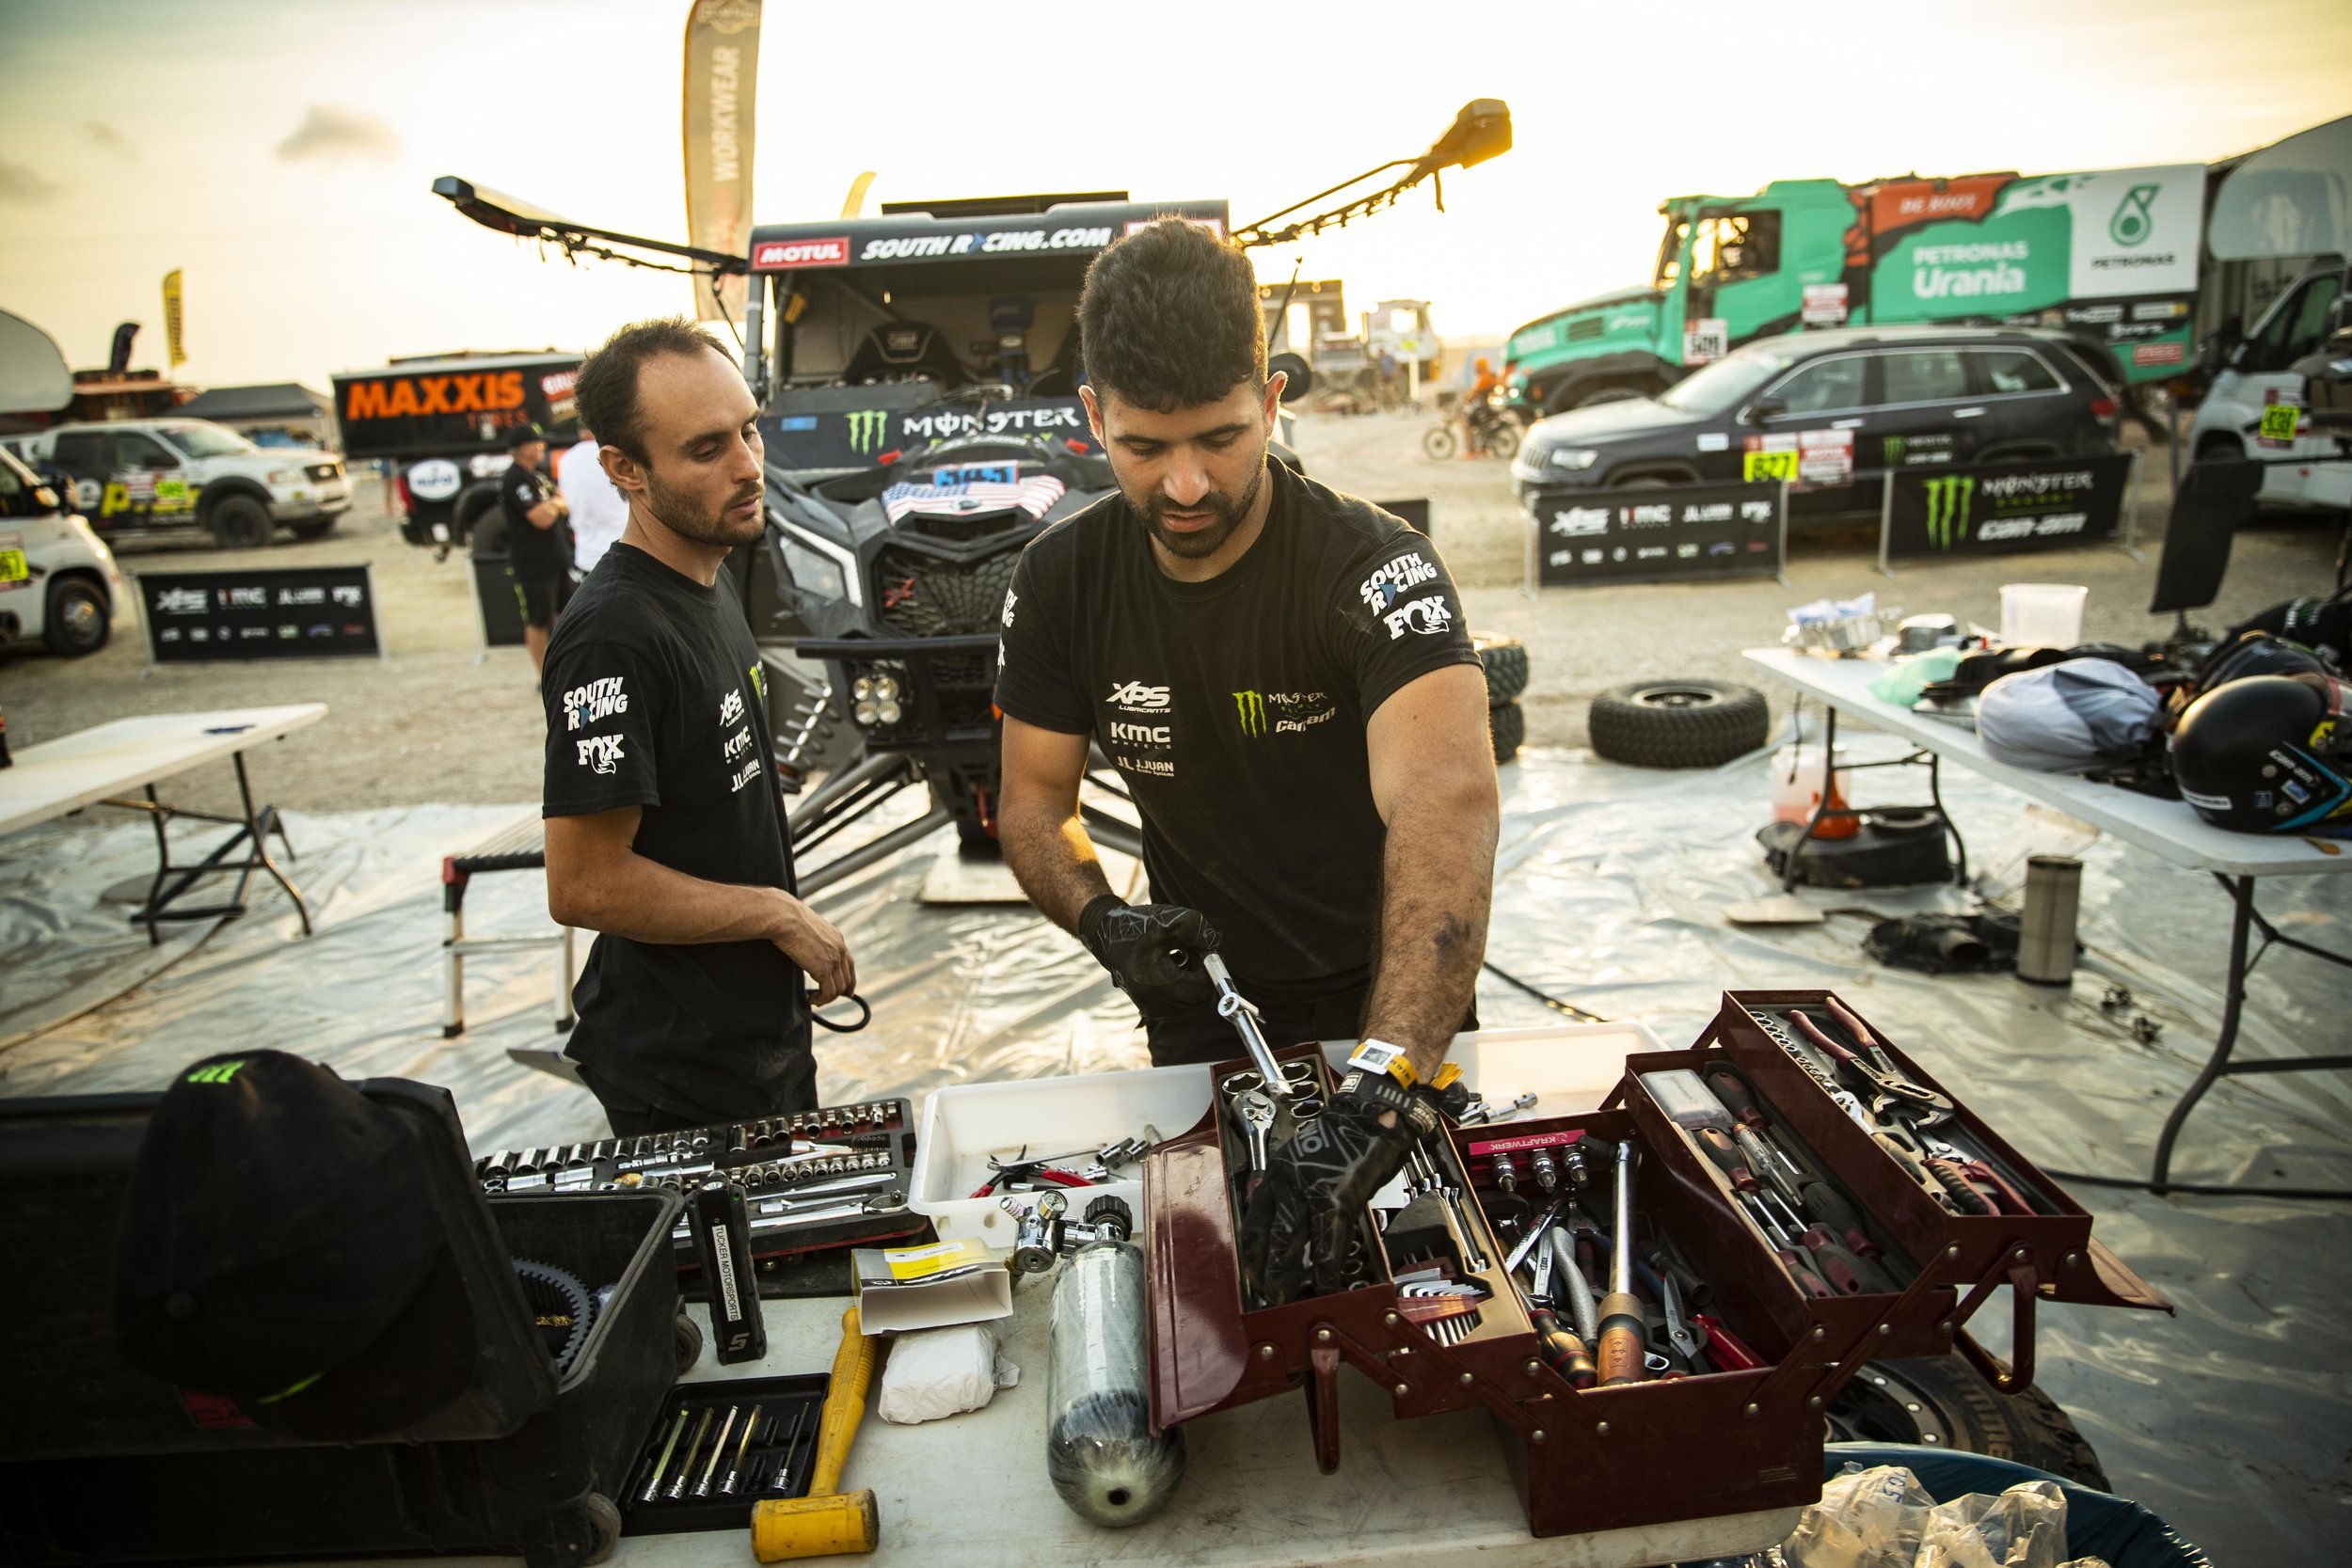 Tucker and Pedro Pedro meticulously going through checks to get the Can-Am ready for stage 3.